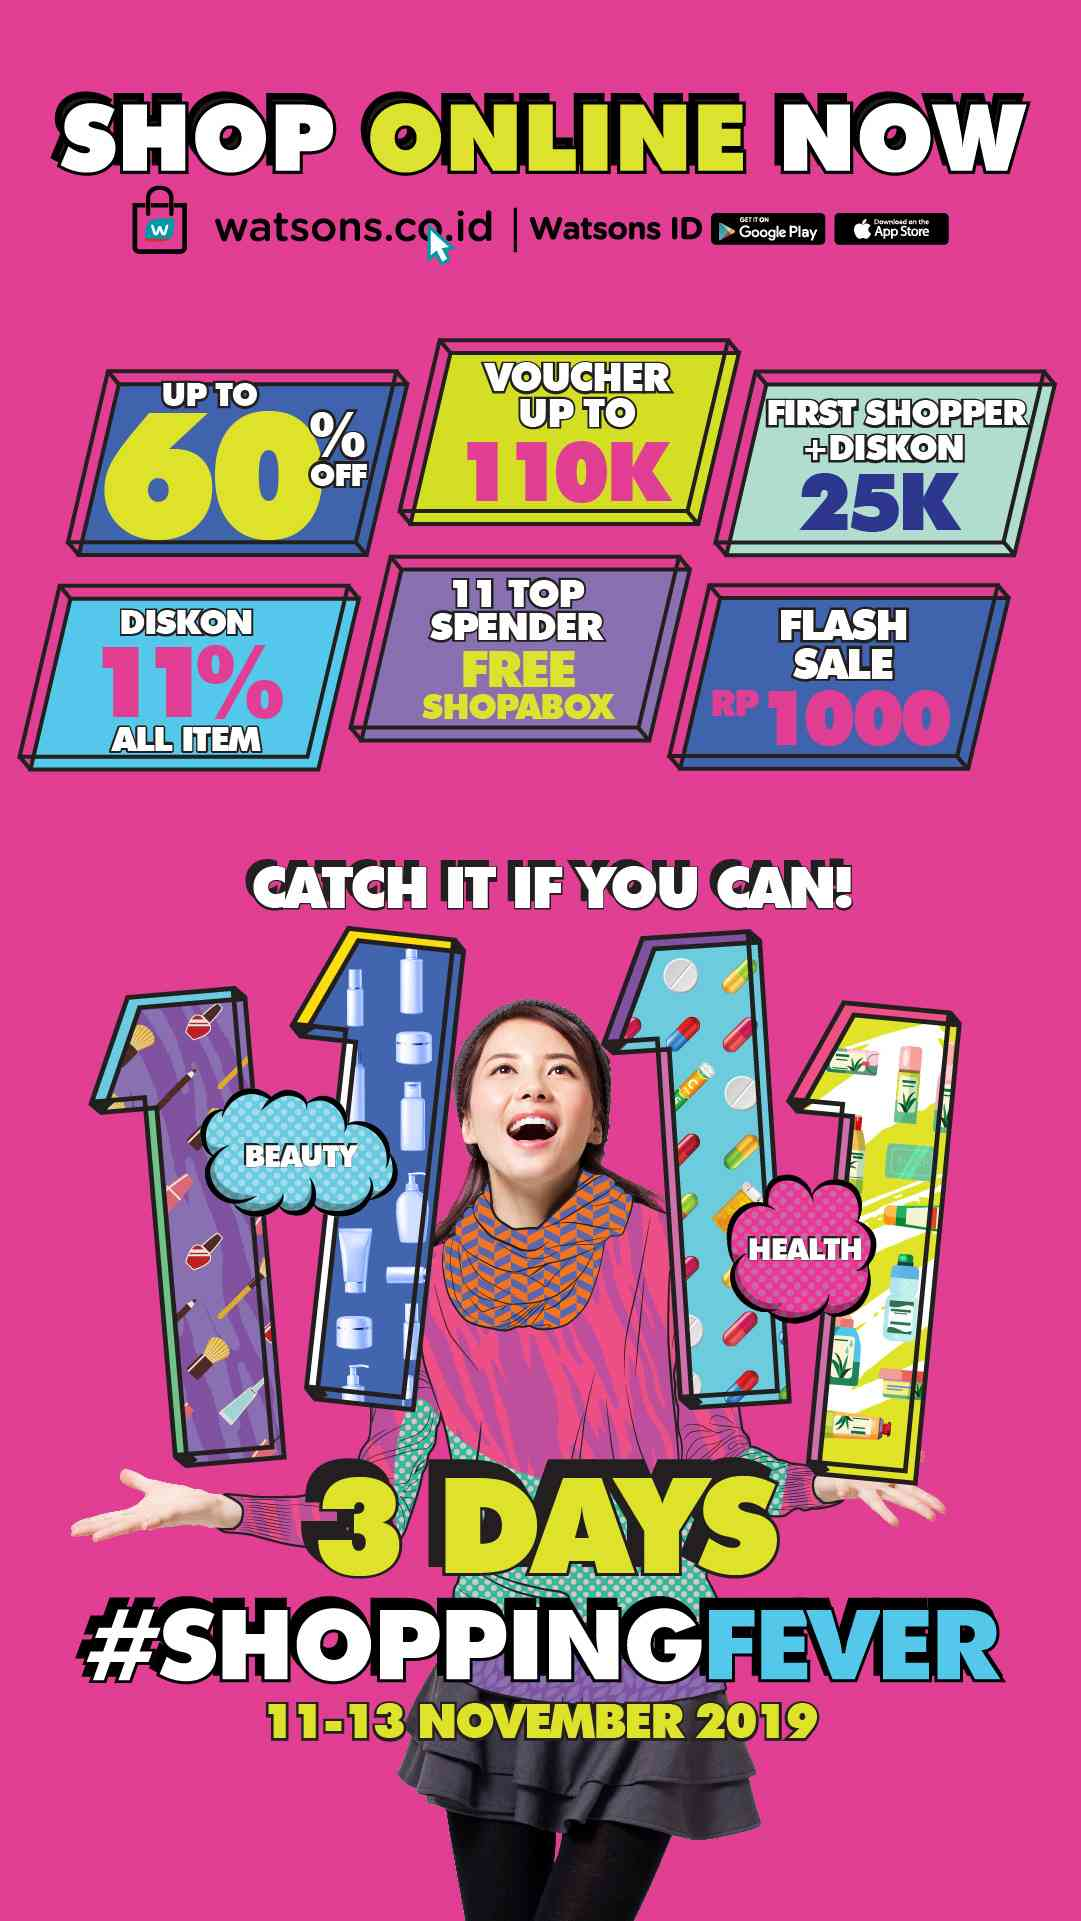 Watsons Shopping Fever 11.11 Discount up to 60% off